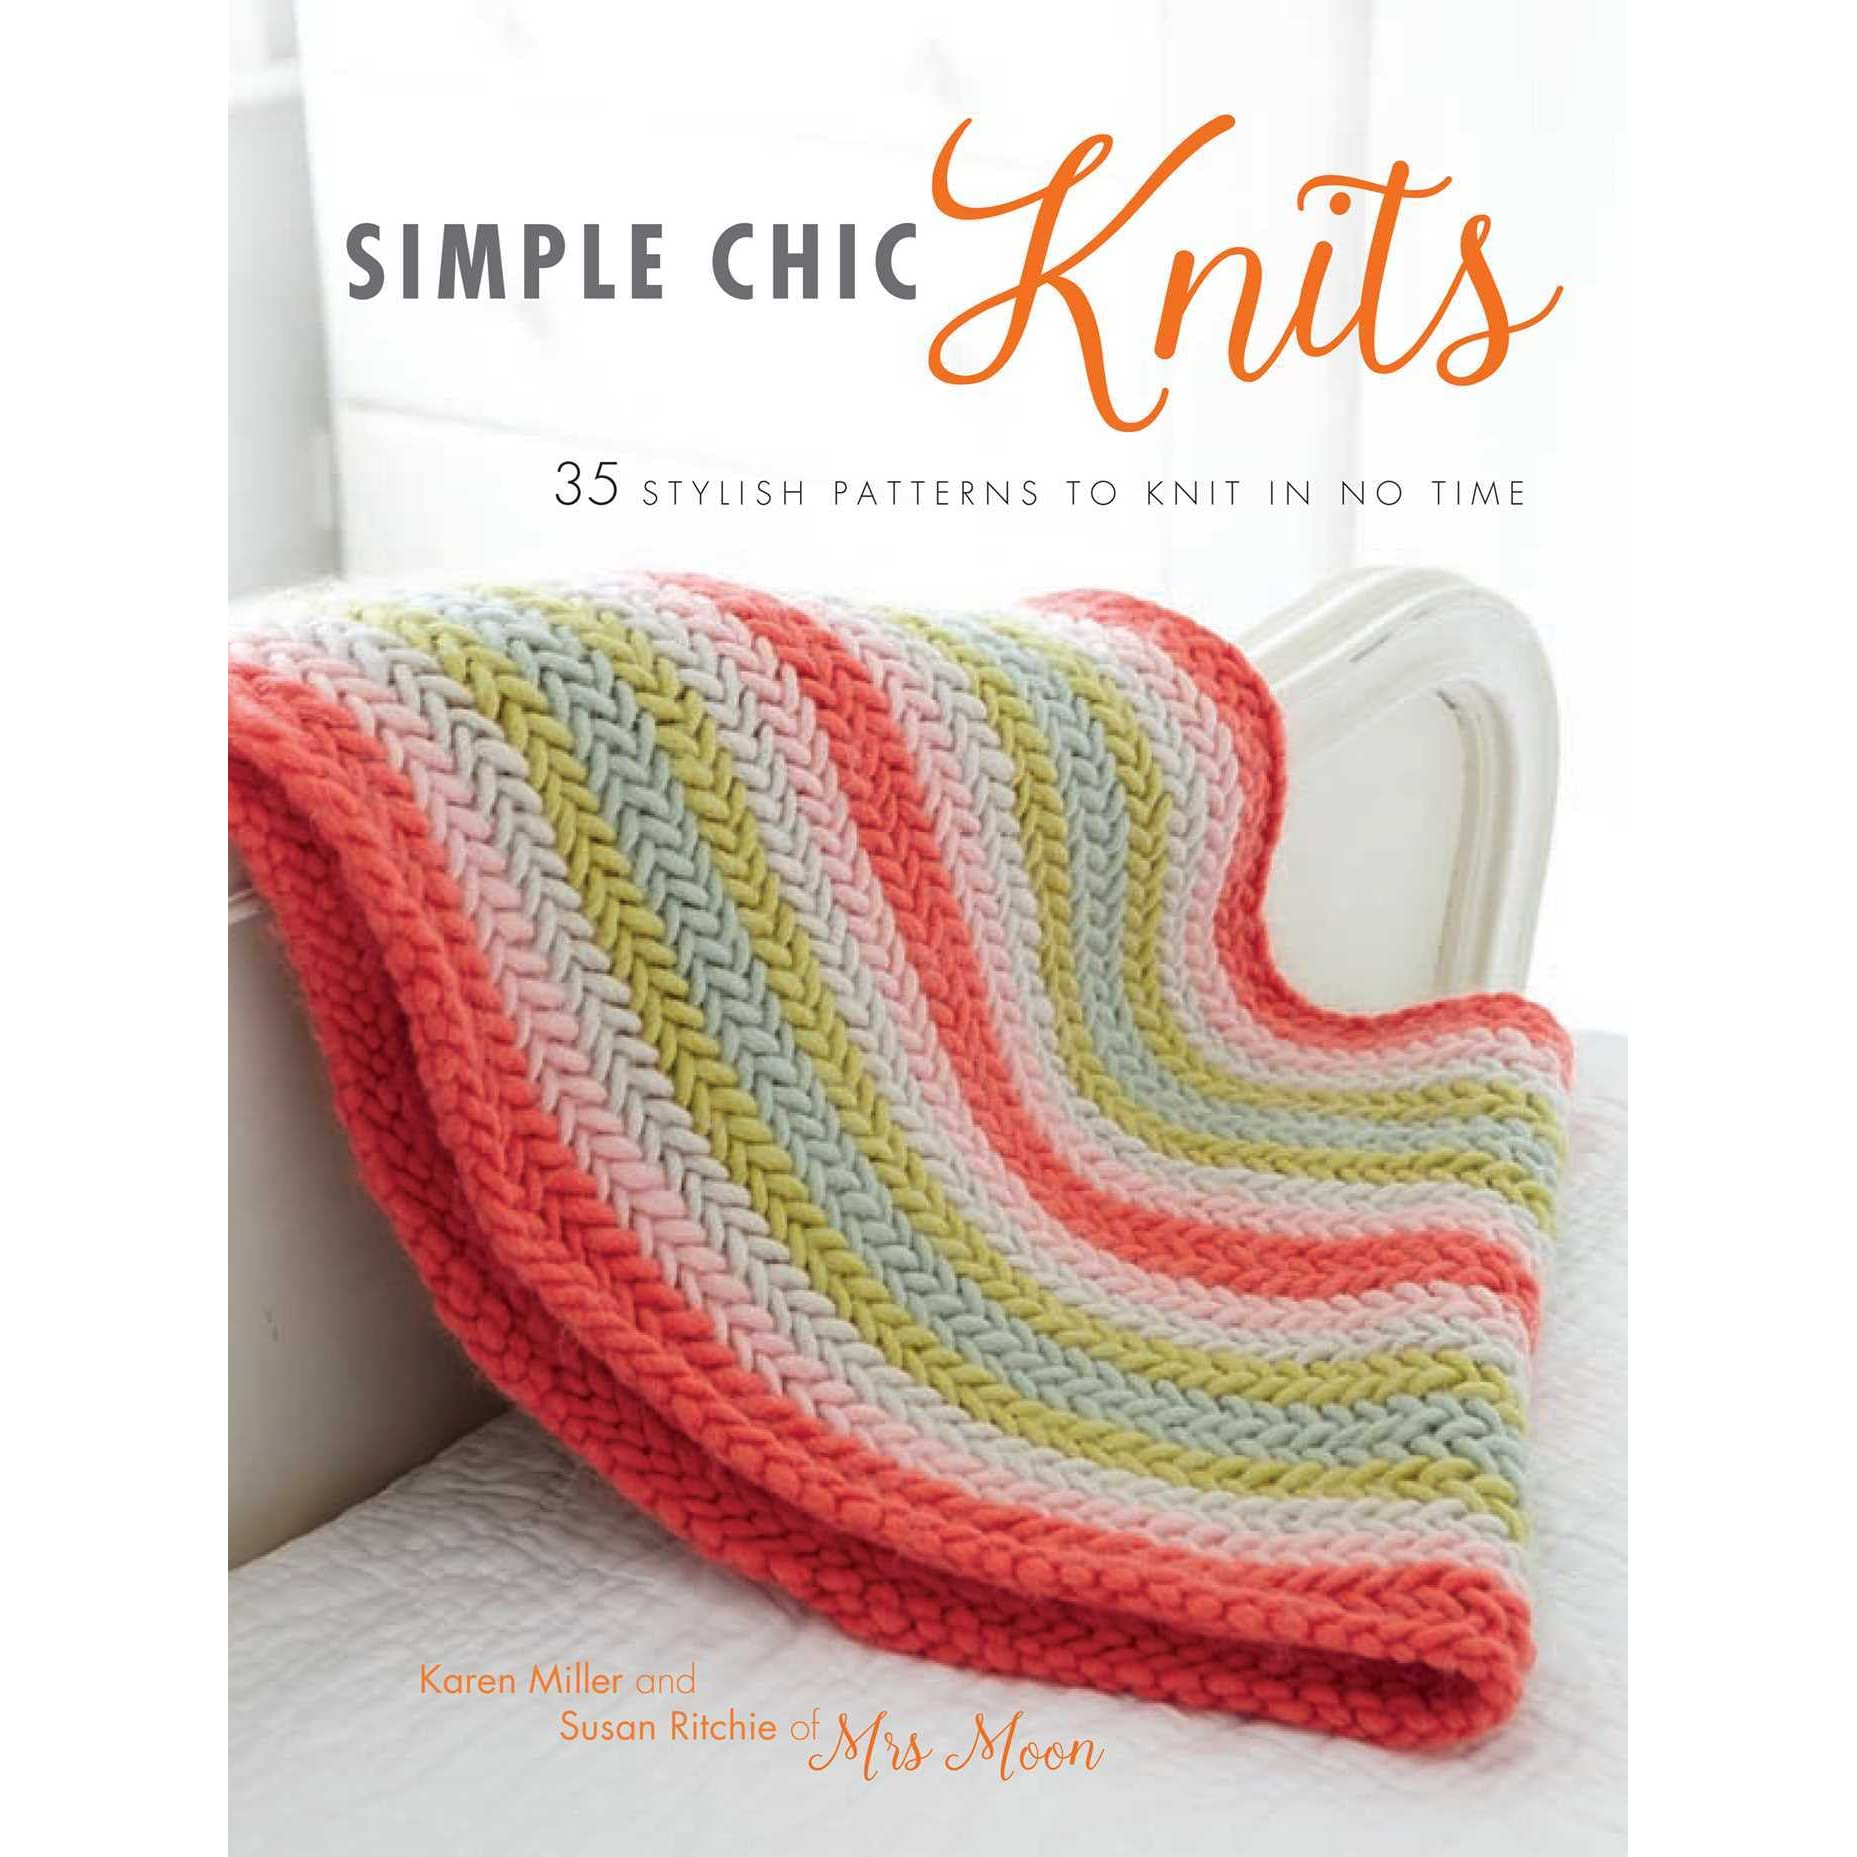 Simple Chic Knits: 35 stylish patterns to knit in no time by Karen ...